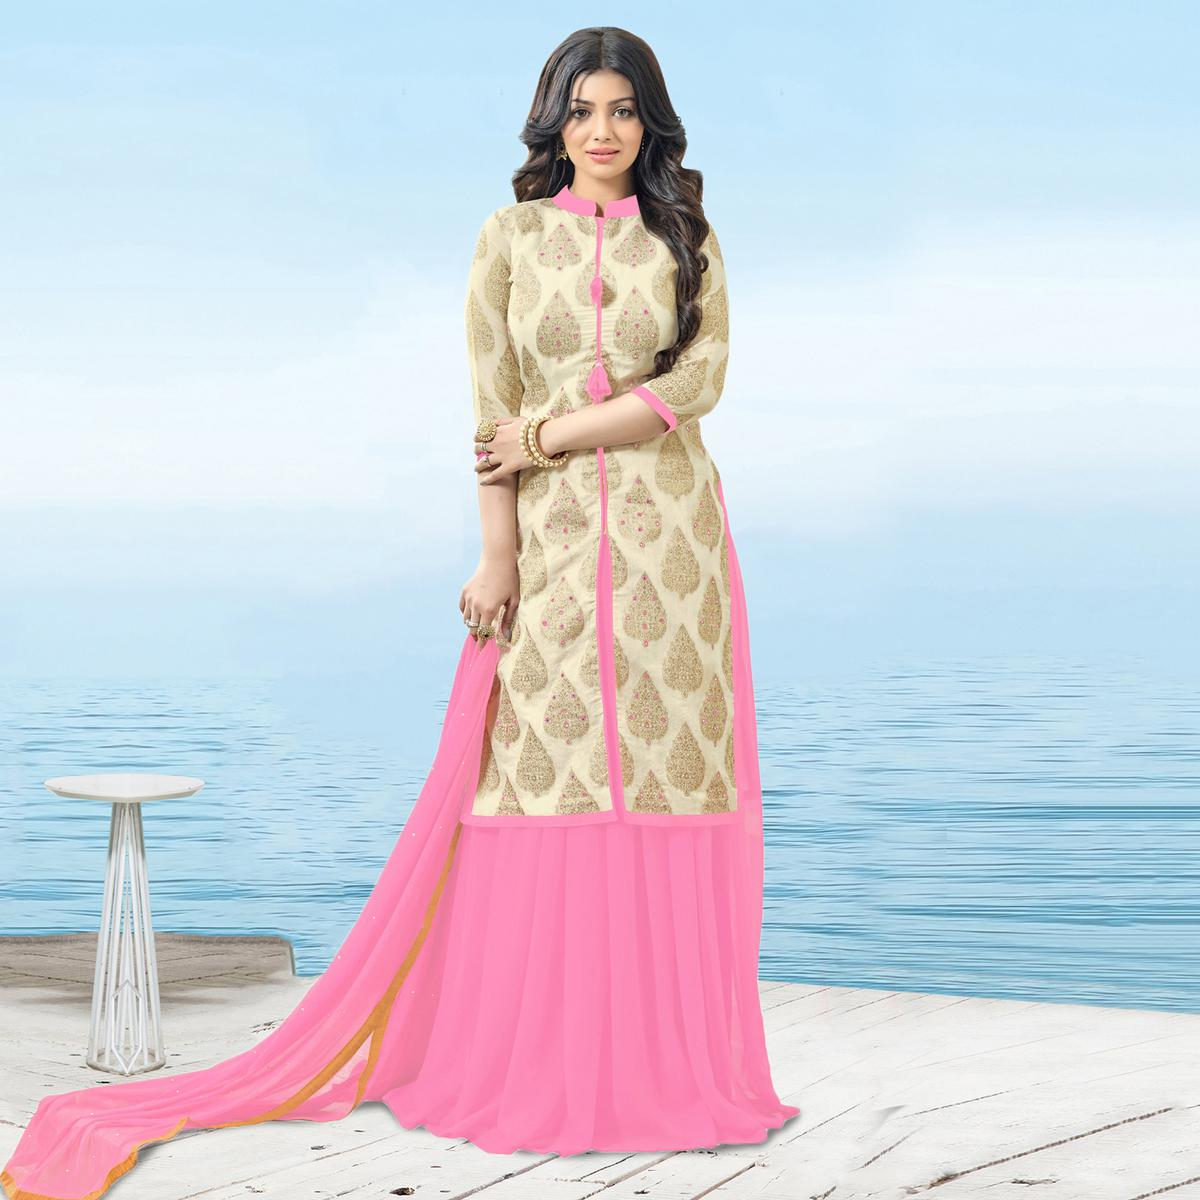 Mesmerising Beige-Pink Designer Mirror Effect Worked Georgette And Chanderi Silk Lehenga Kameez